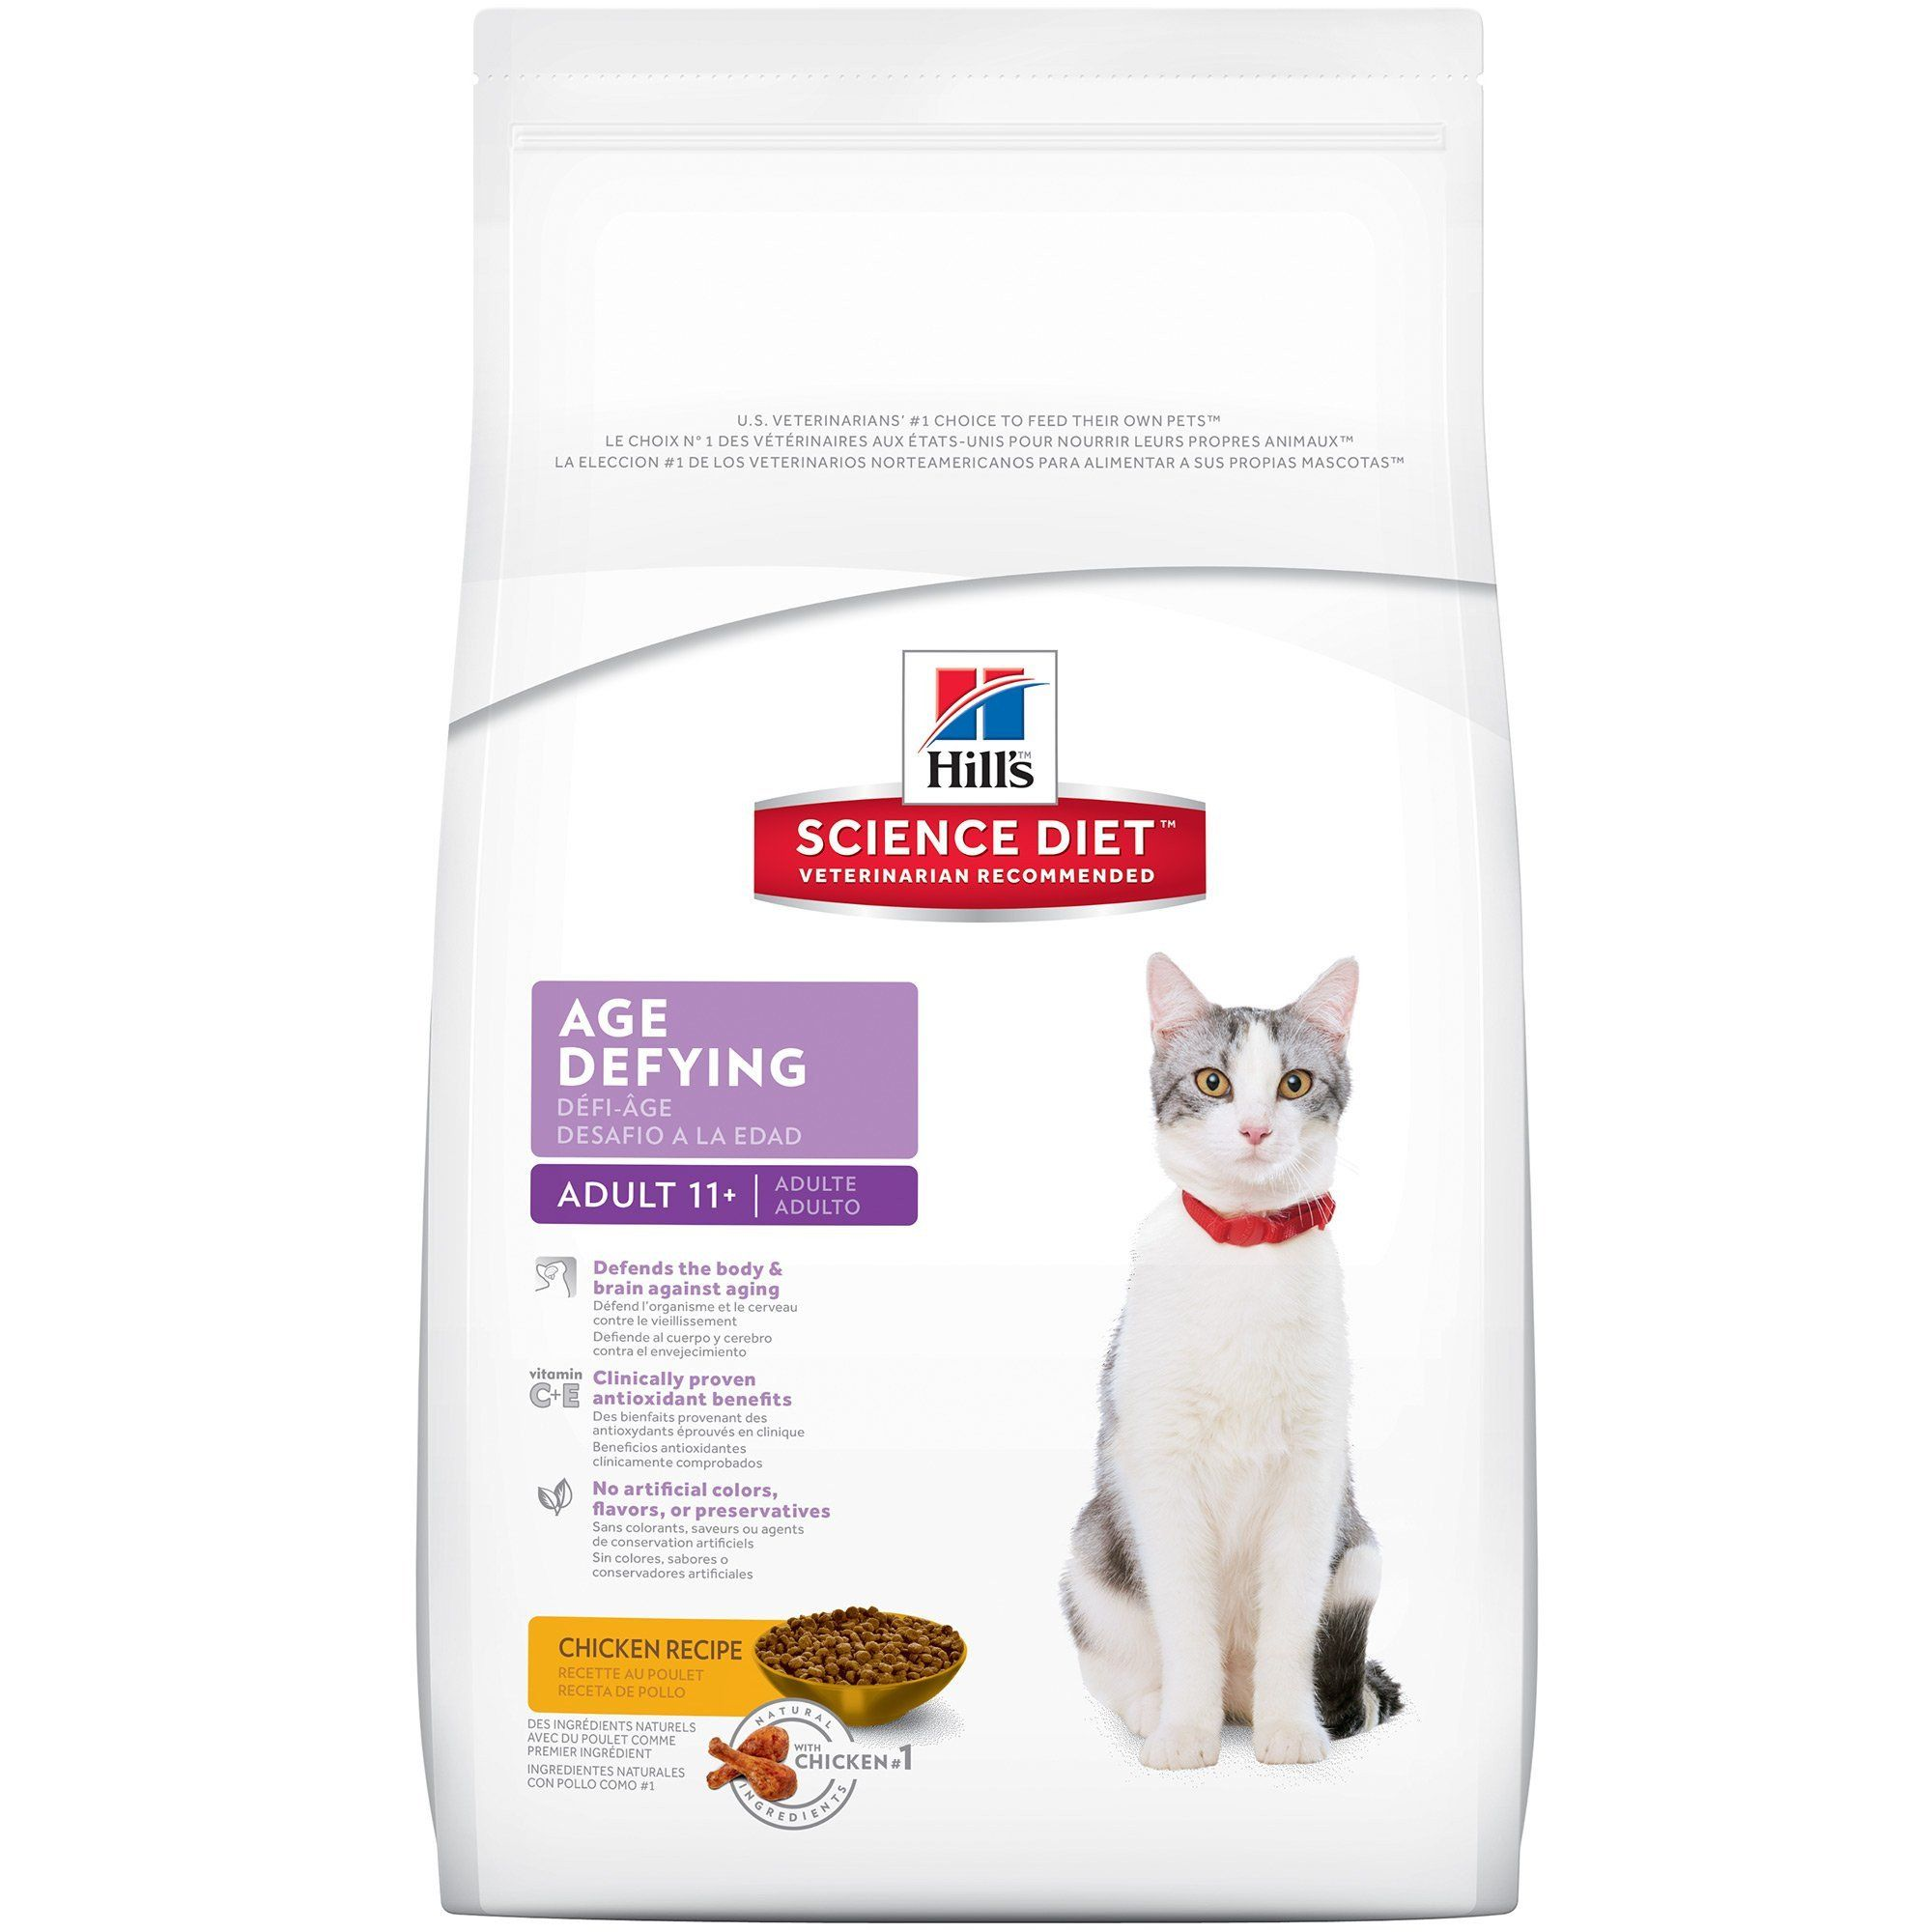 Hill's Science Diet Age Defying Adult 11+ Dry Cat Food Bag